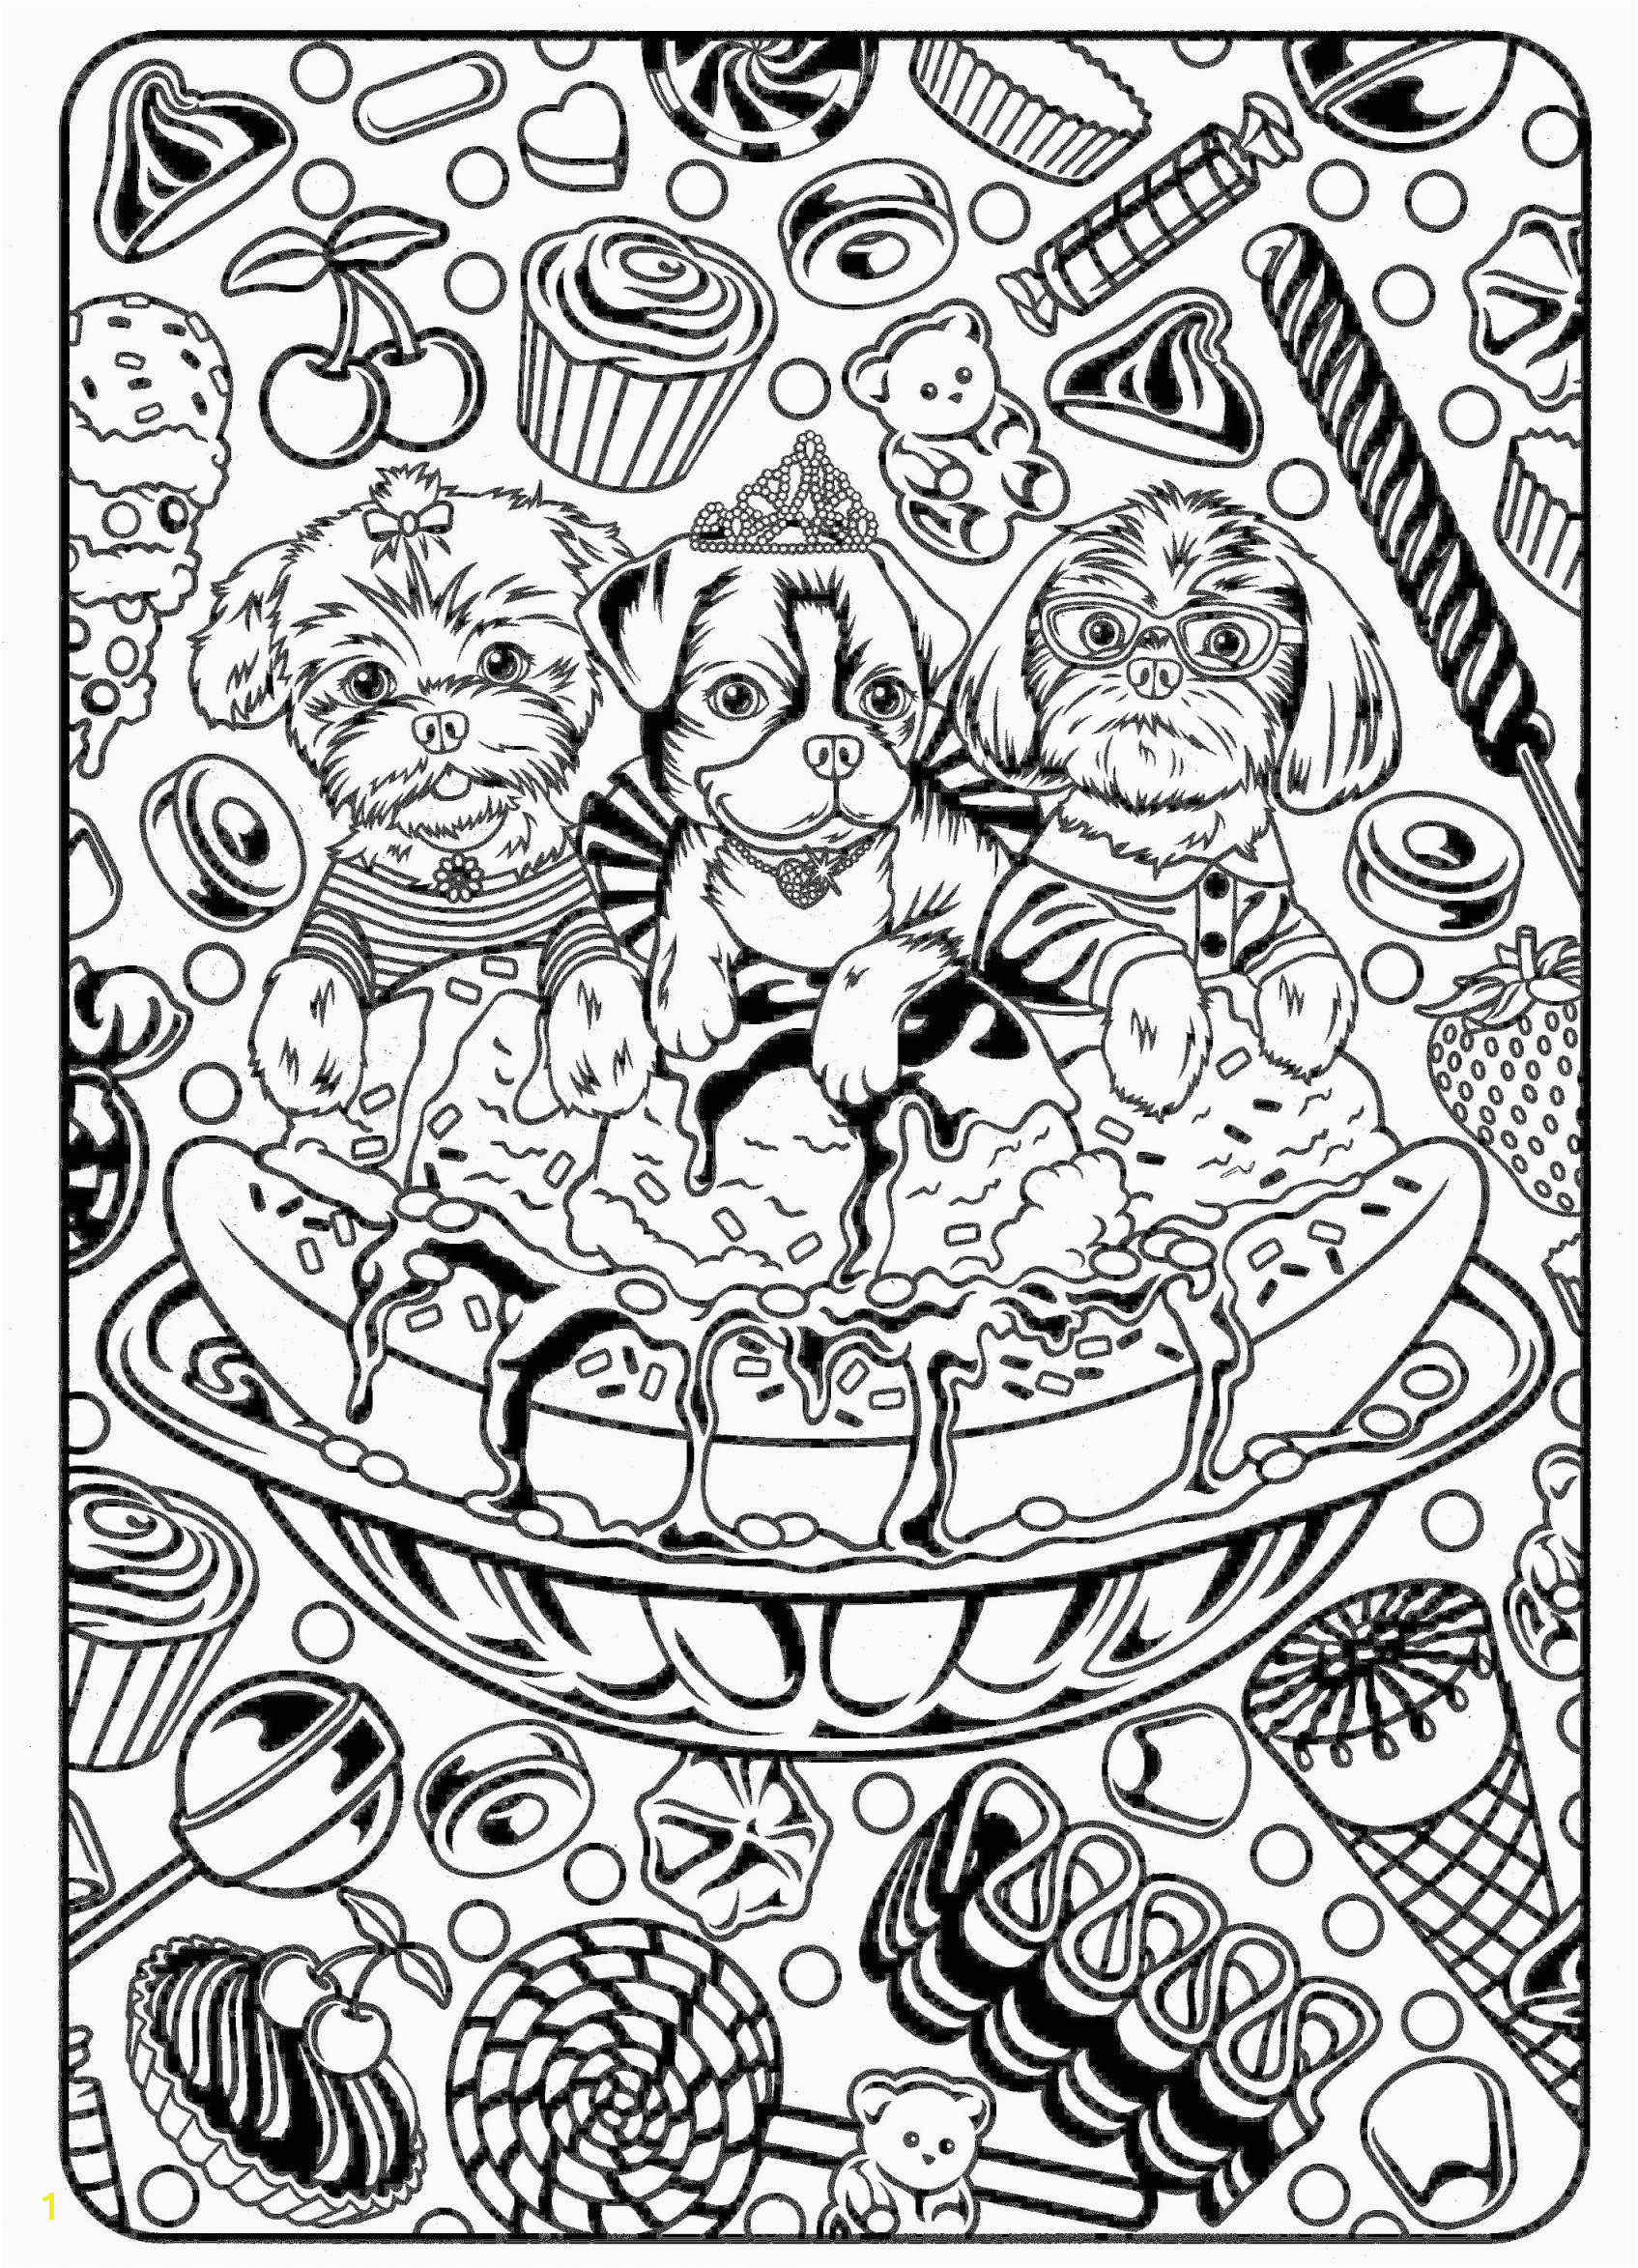 Mr Putter and Tabby Coloring Pages Elegant Christmas ornament Coloring Pages Printable Coloring Pages